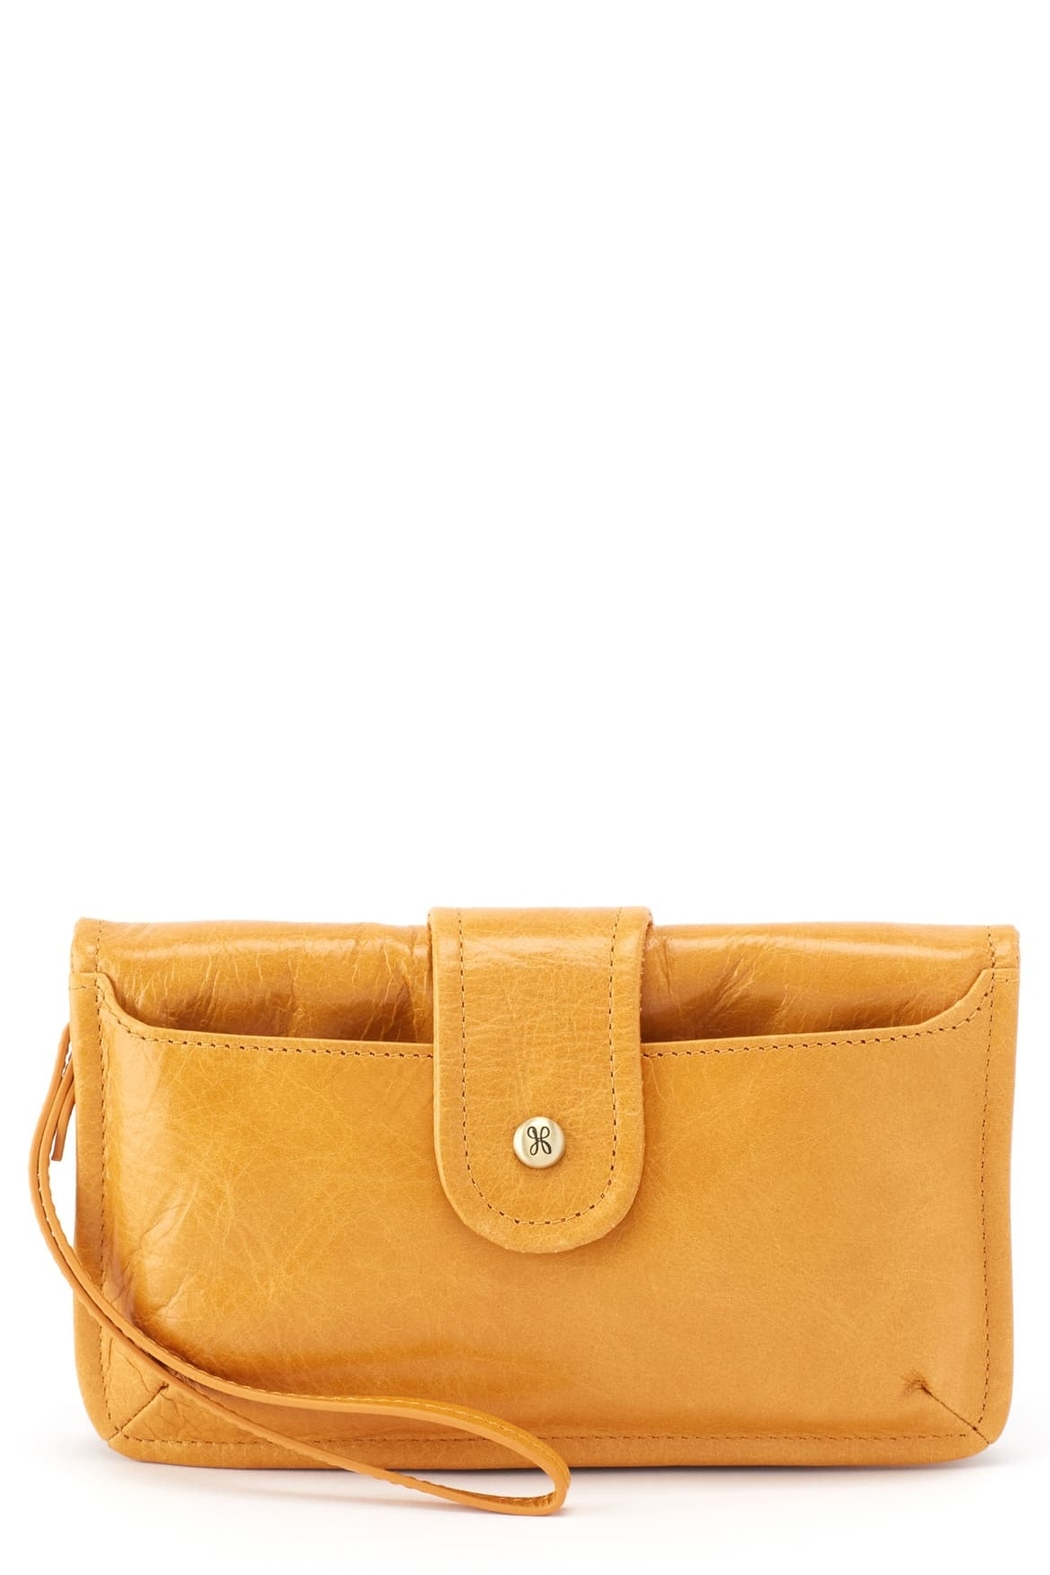 Hobo The Original Hobo Galaxy Wristlet in Amber - Front Cropped Image